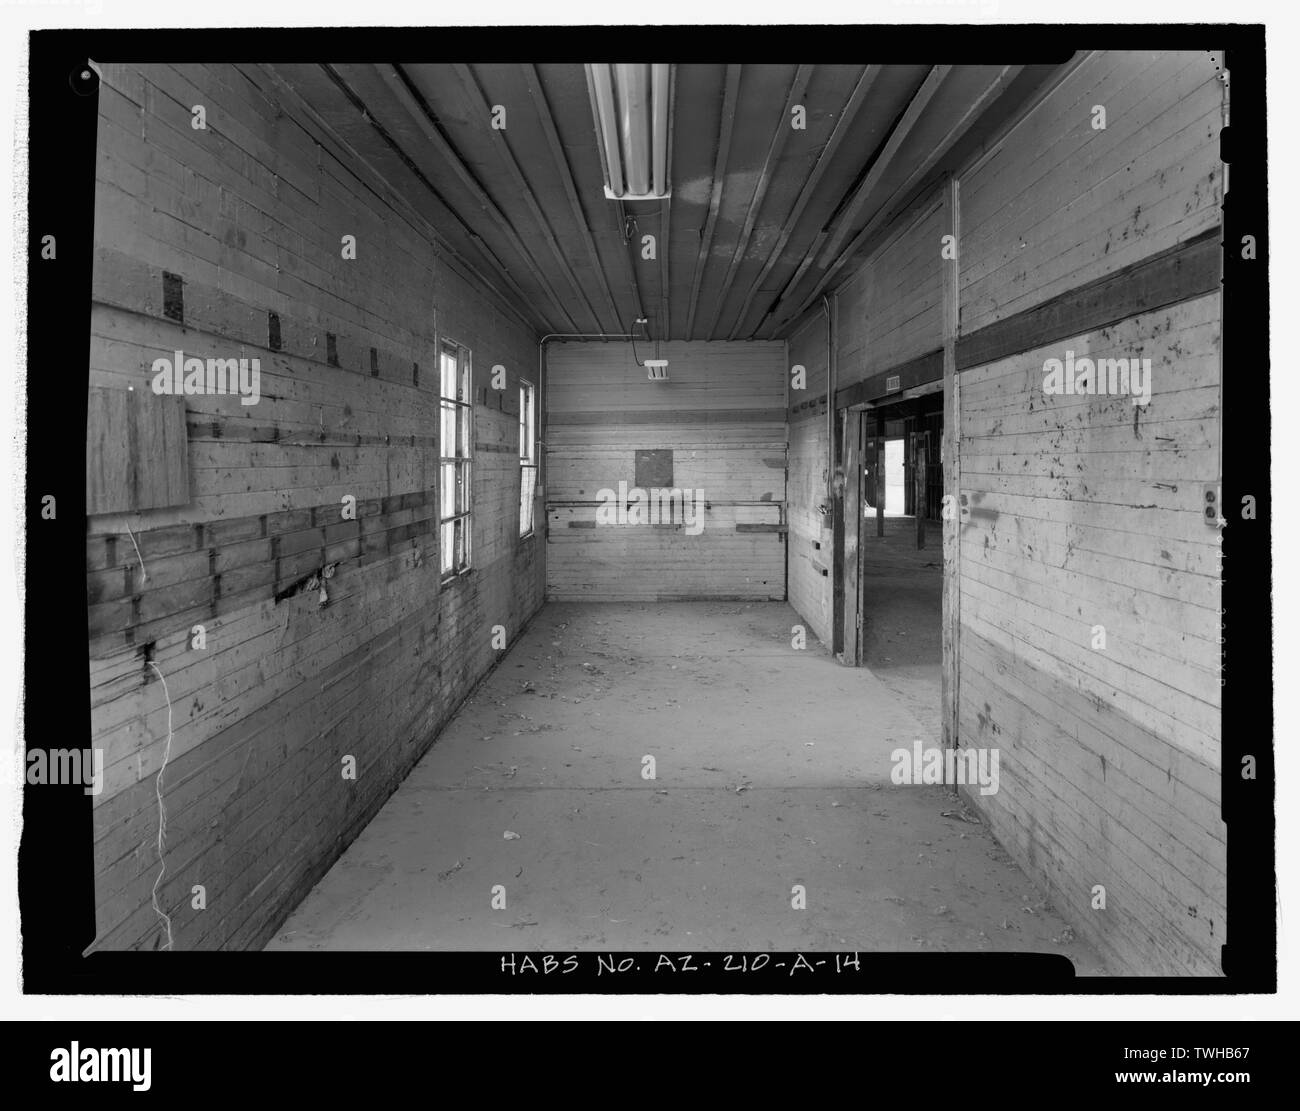 SADDLE ROOM INTERIOR SHOWING BOARD-FACED WALLS AND BOARD-AND-BATTEN CEILING, FROM EAST - Fort Huachuca, Cavalry Stable, Clarkson Road, Sierra Vista, Cochise County, AZ - Stock Image